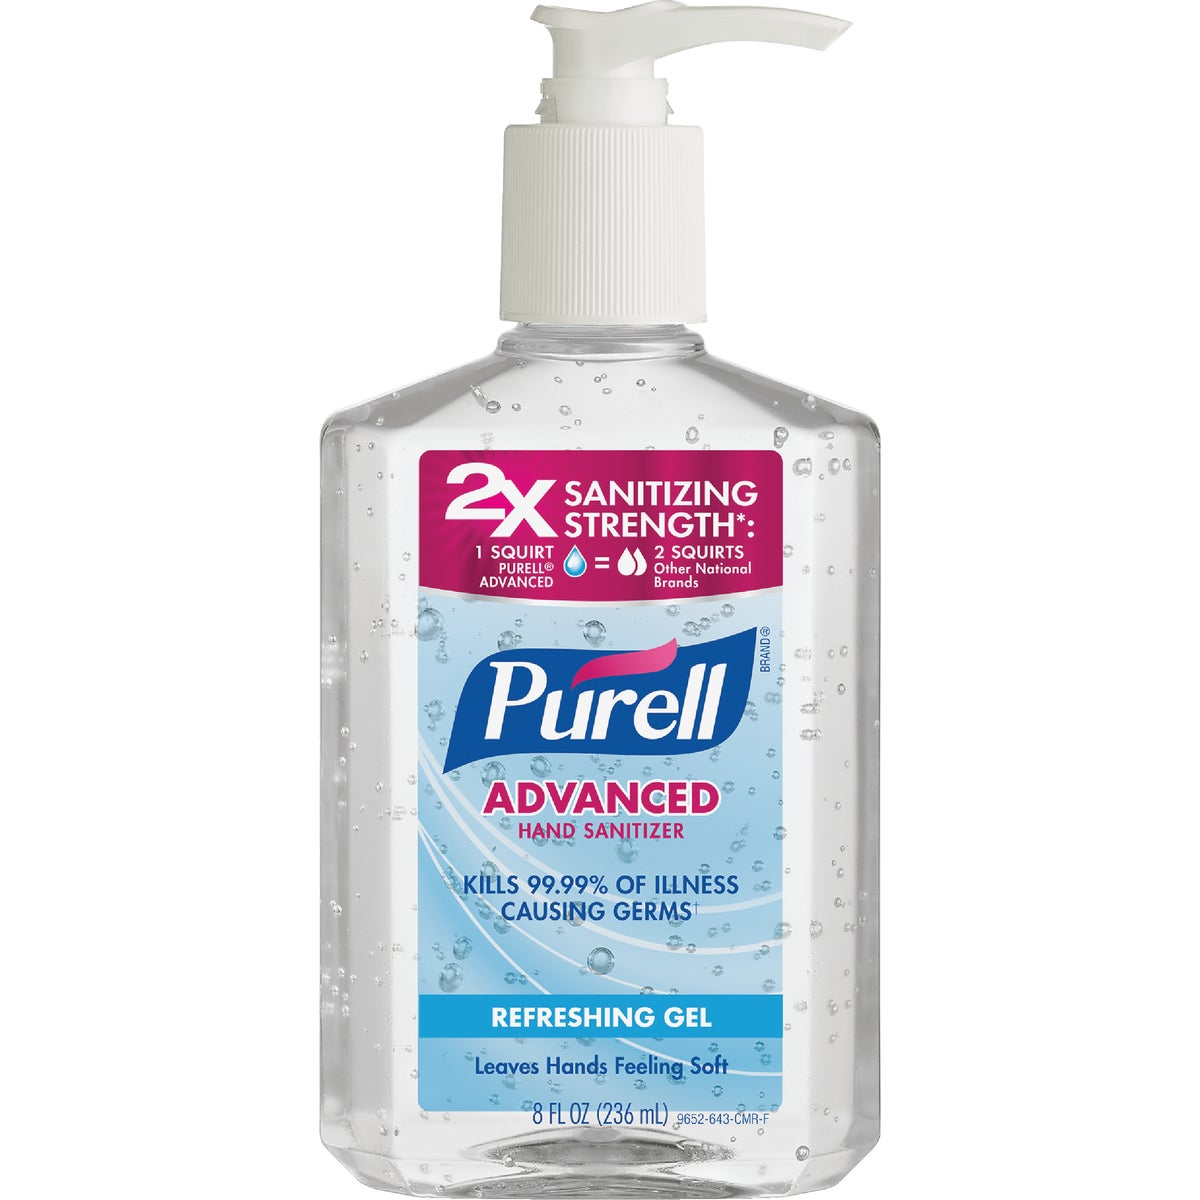 8OZ HAND SANITIZER - 9652-12-CMR by Bunzl USA